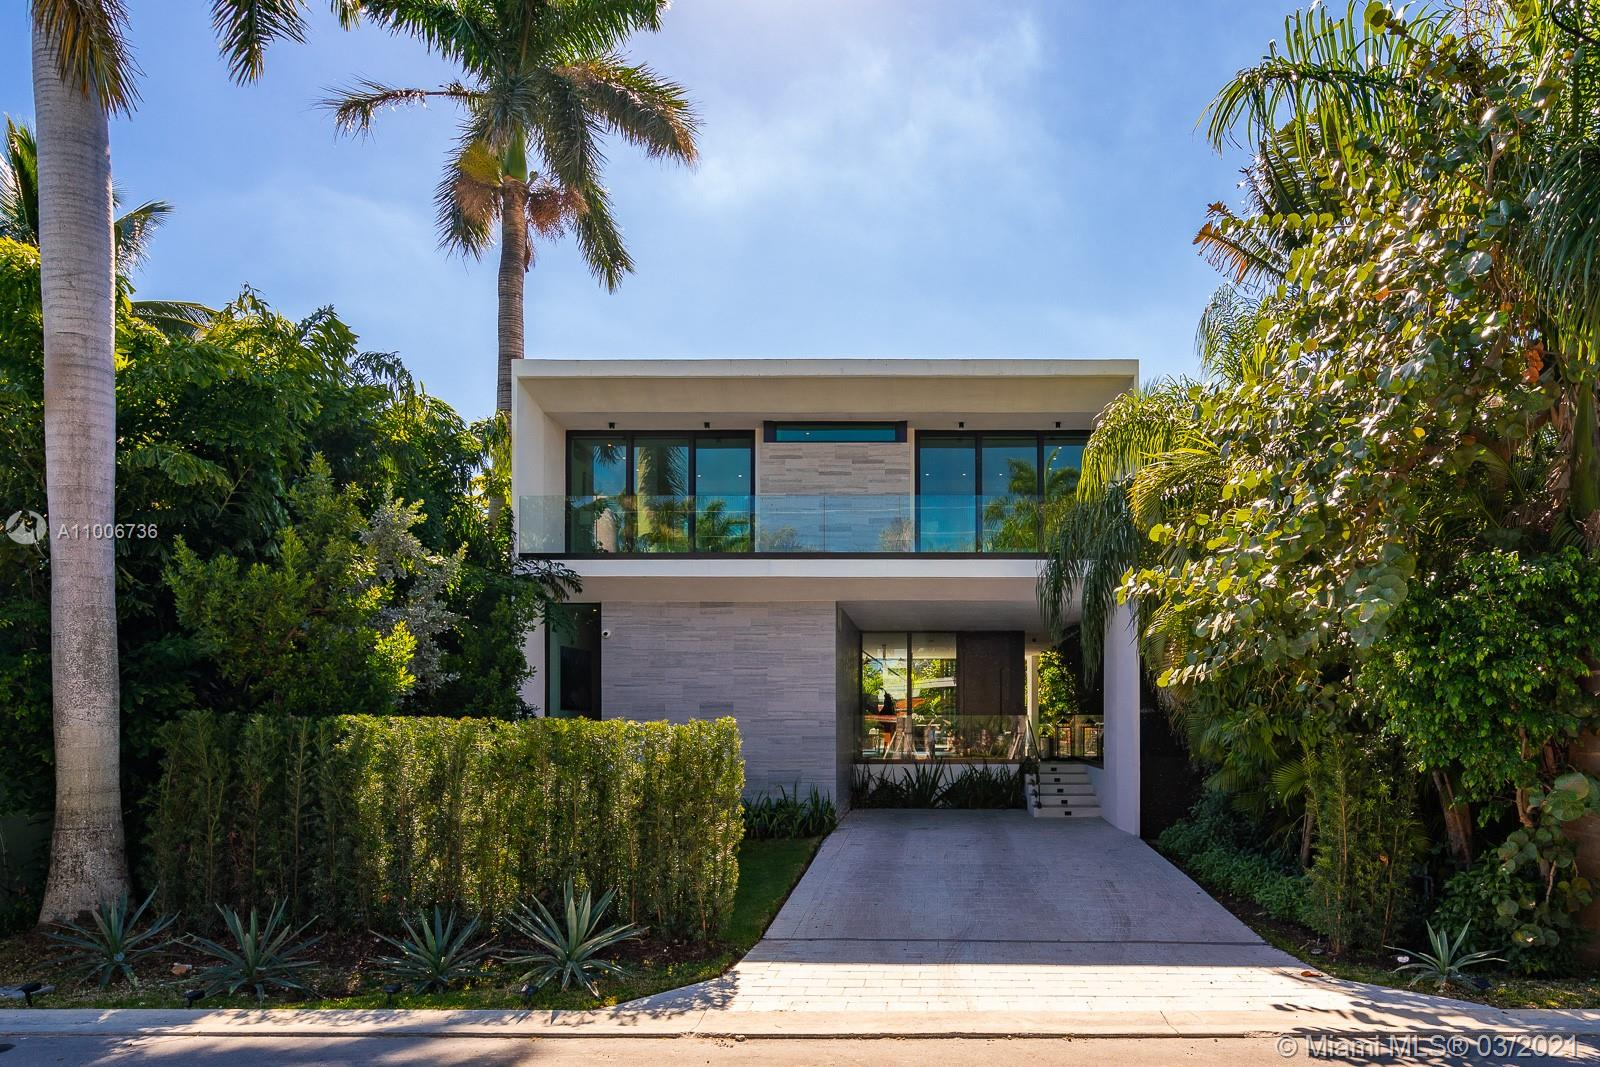 Palm Island - 272 Palm Ave, Miami Beach, FL 33139